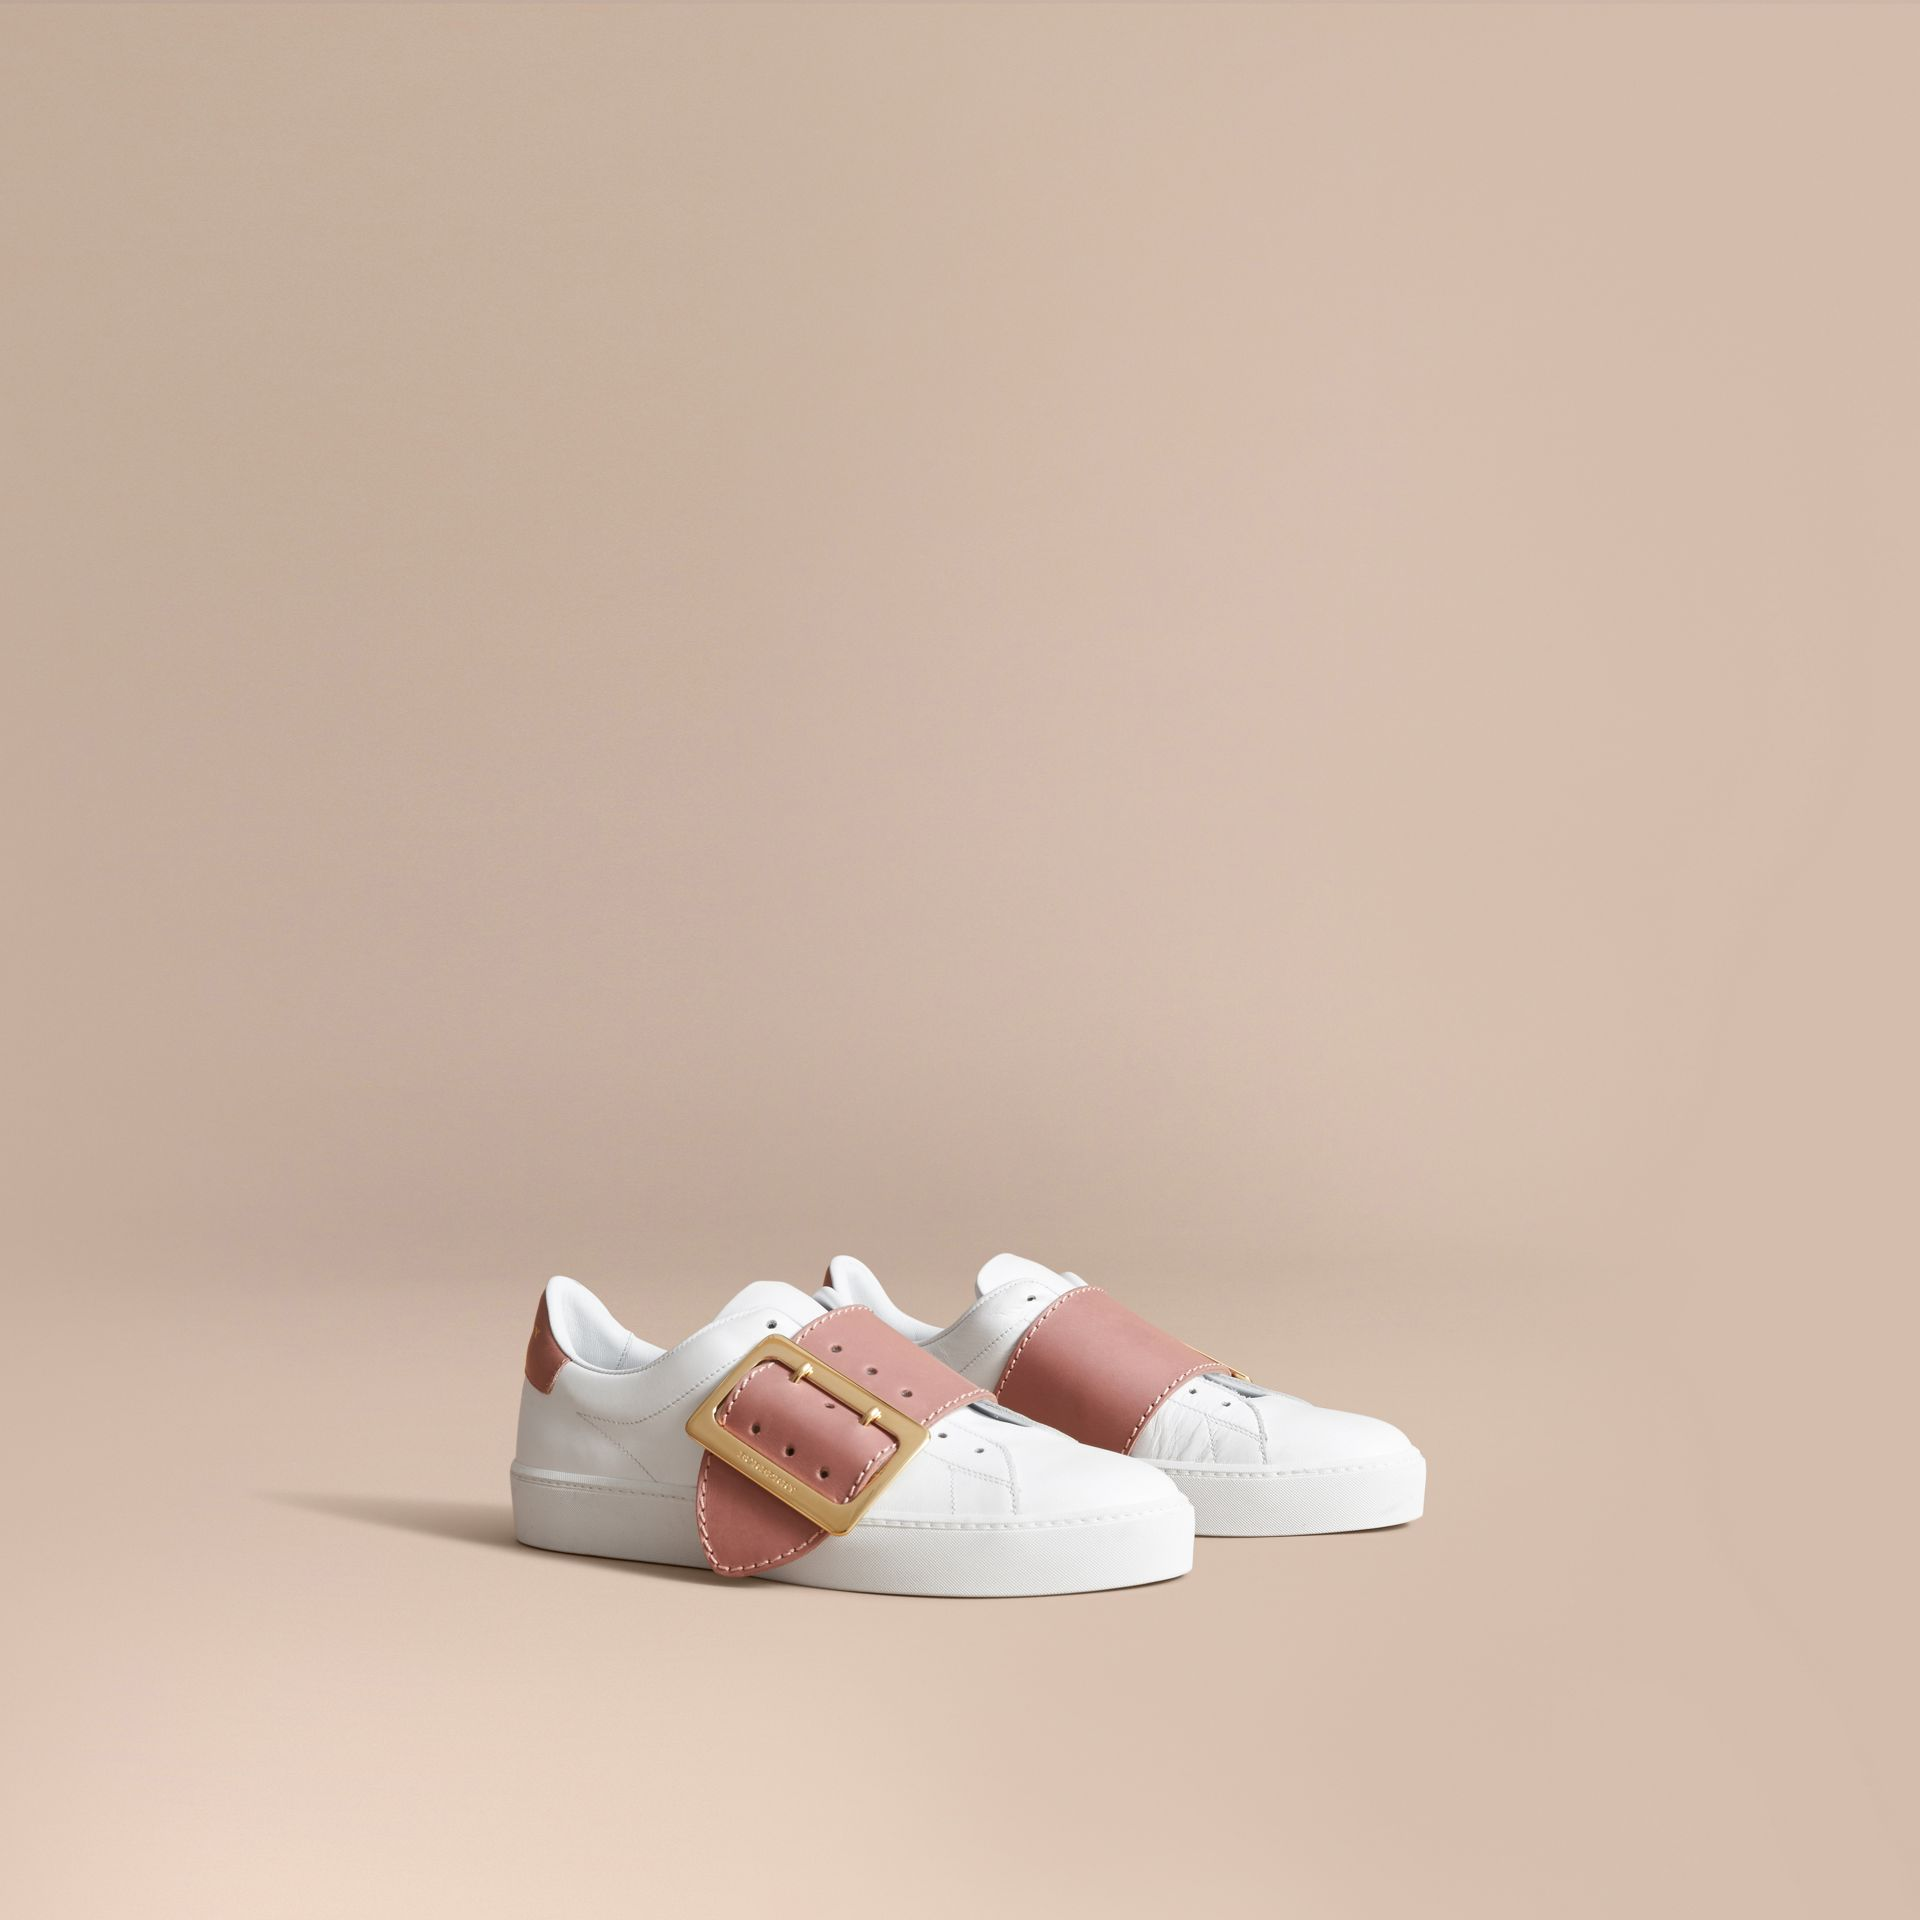 Buckle Detail Leather Trainers in Pink Apricot - Women | Burberry - gallery image 1